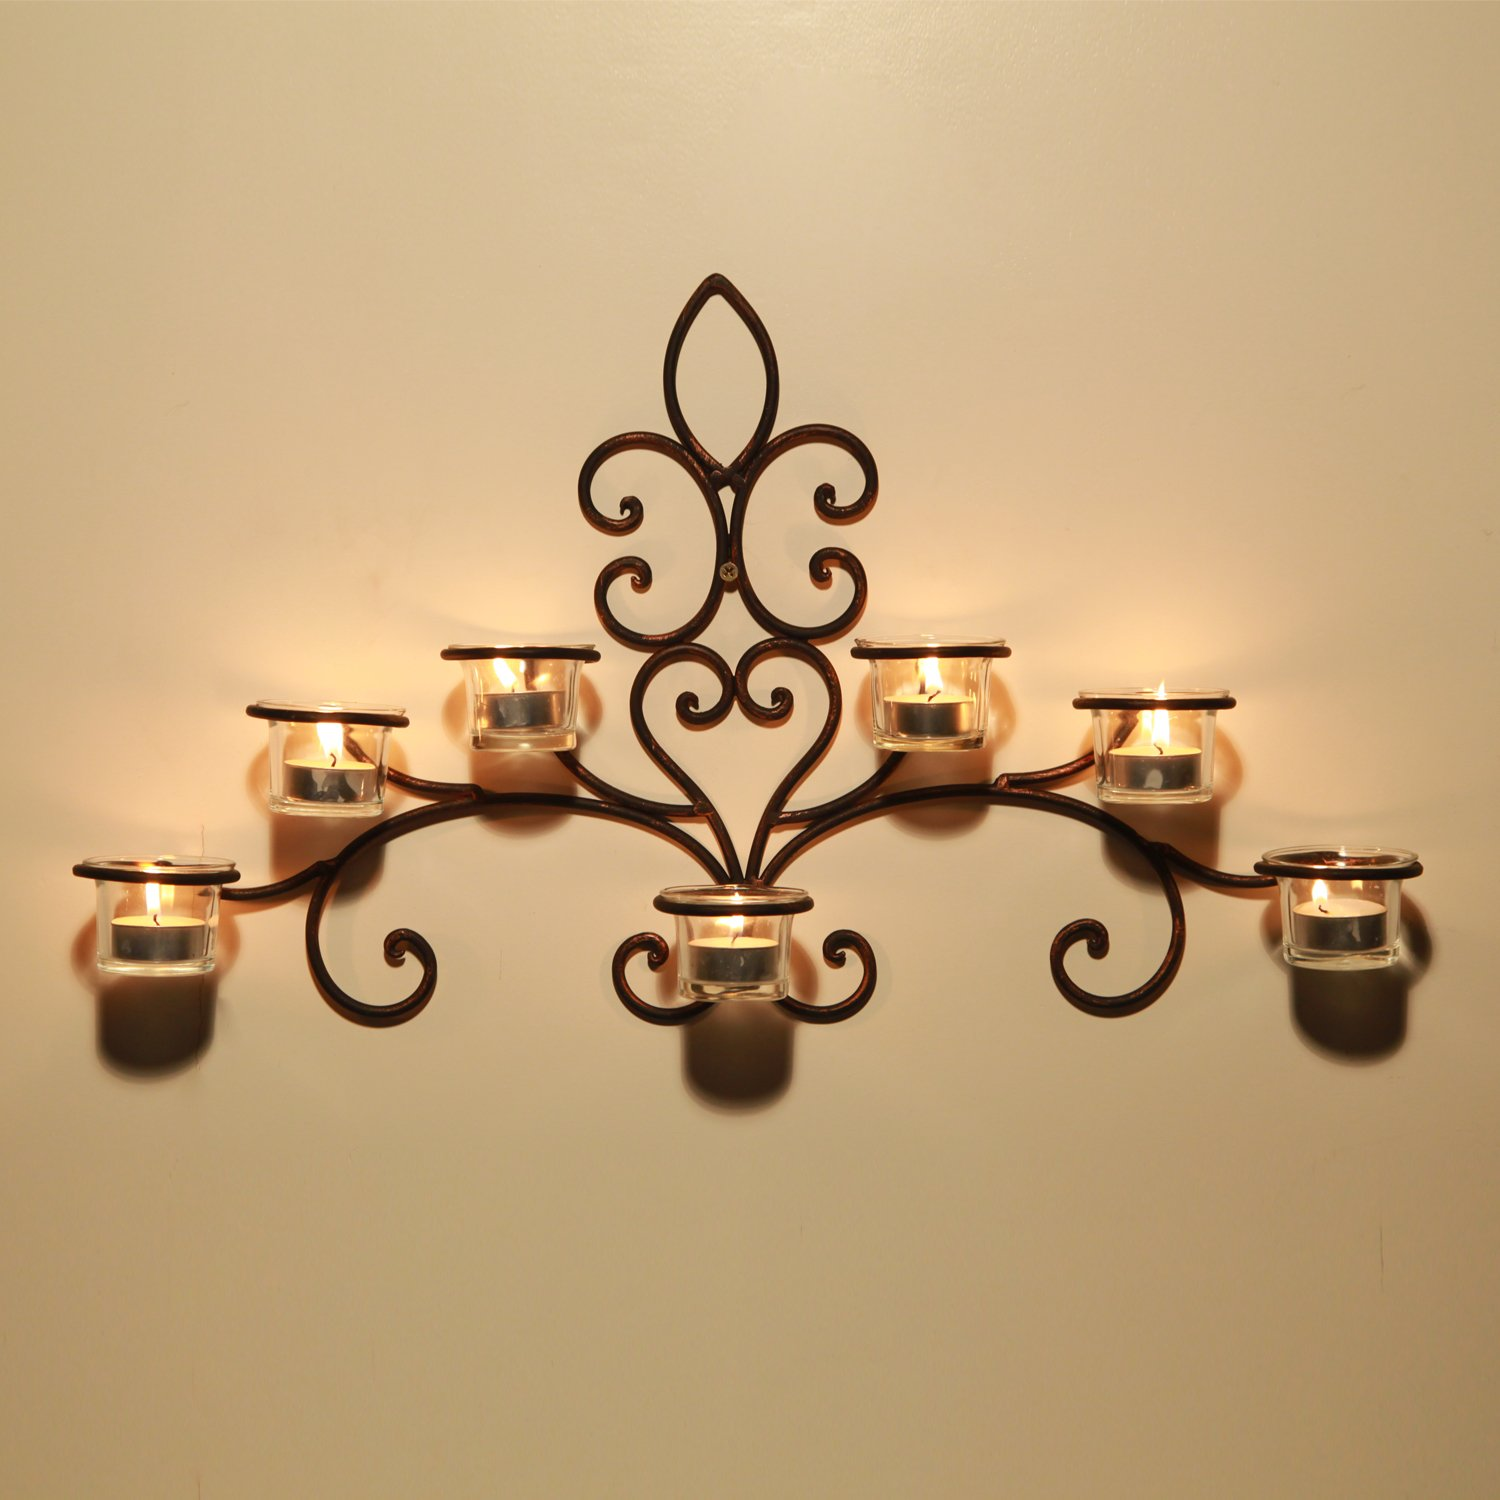 Amazon.com: Adeco HD0012 Iron & Glass Horizontal Wall Hanging Candle ...